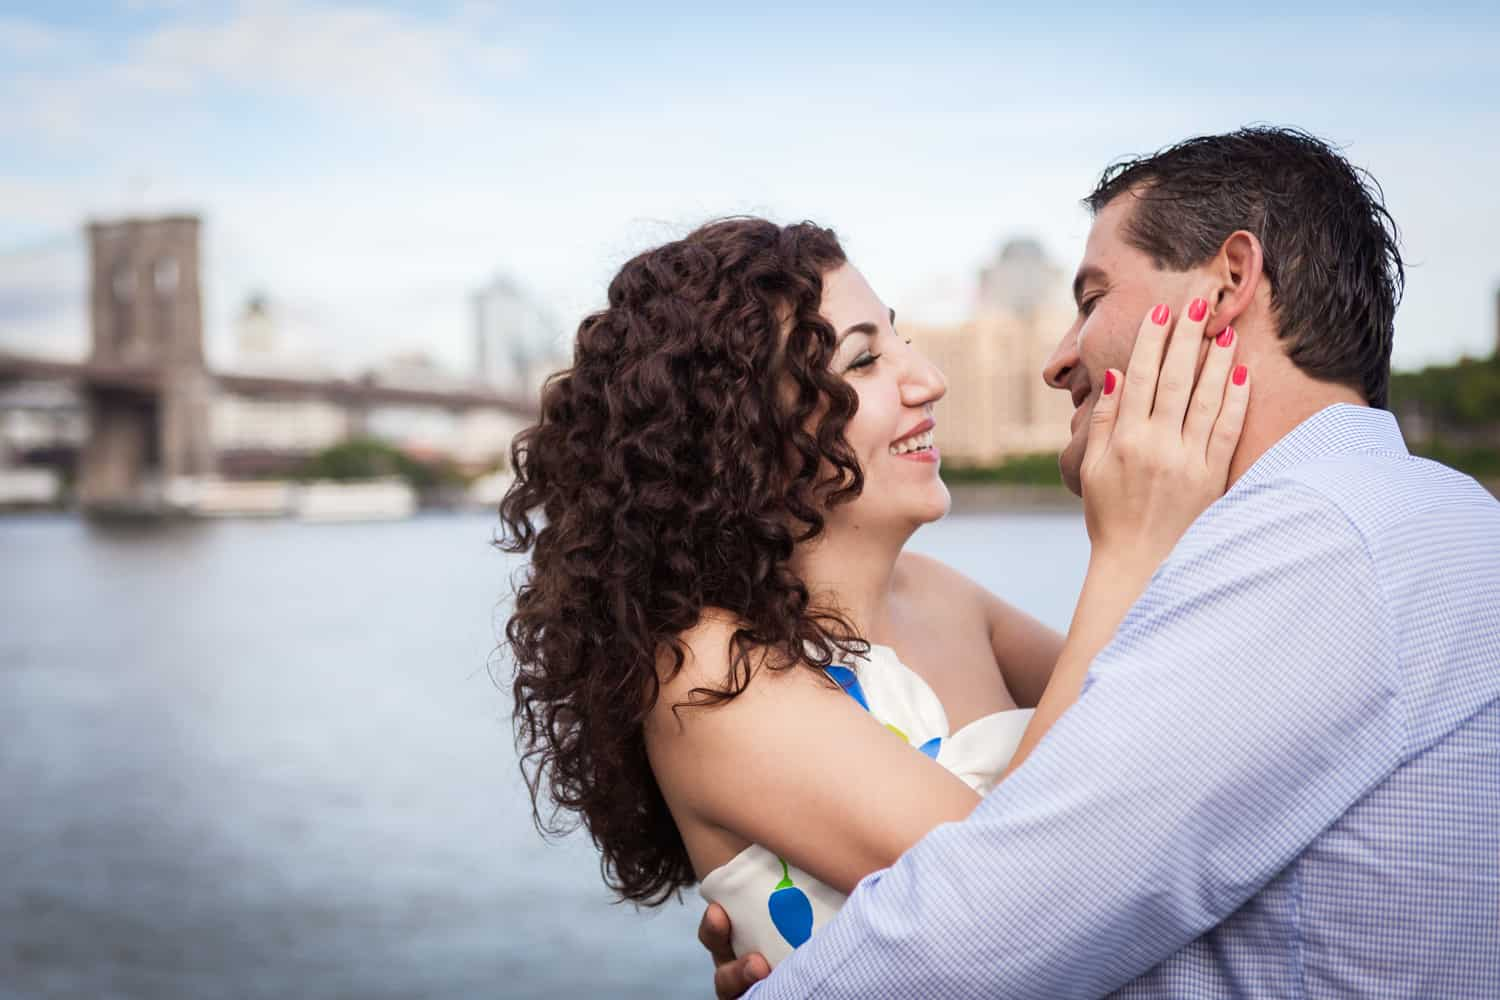 Financial District engagement photos of woman grasping man's face